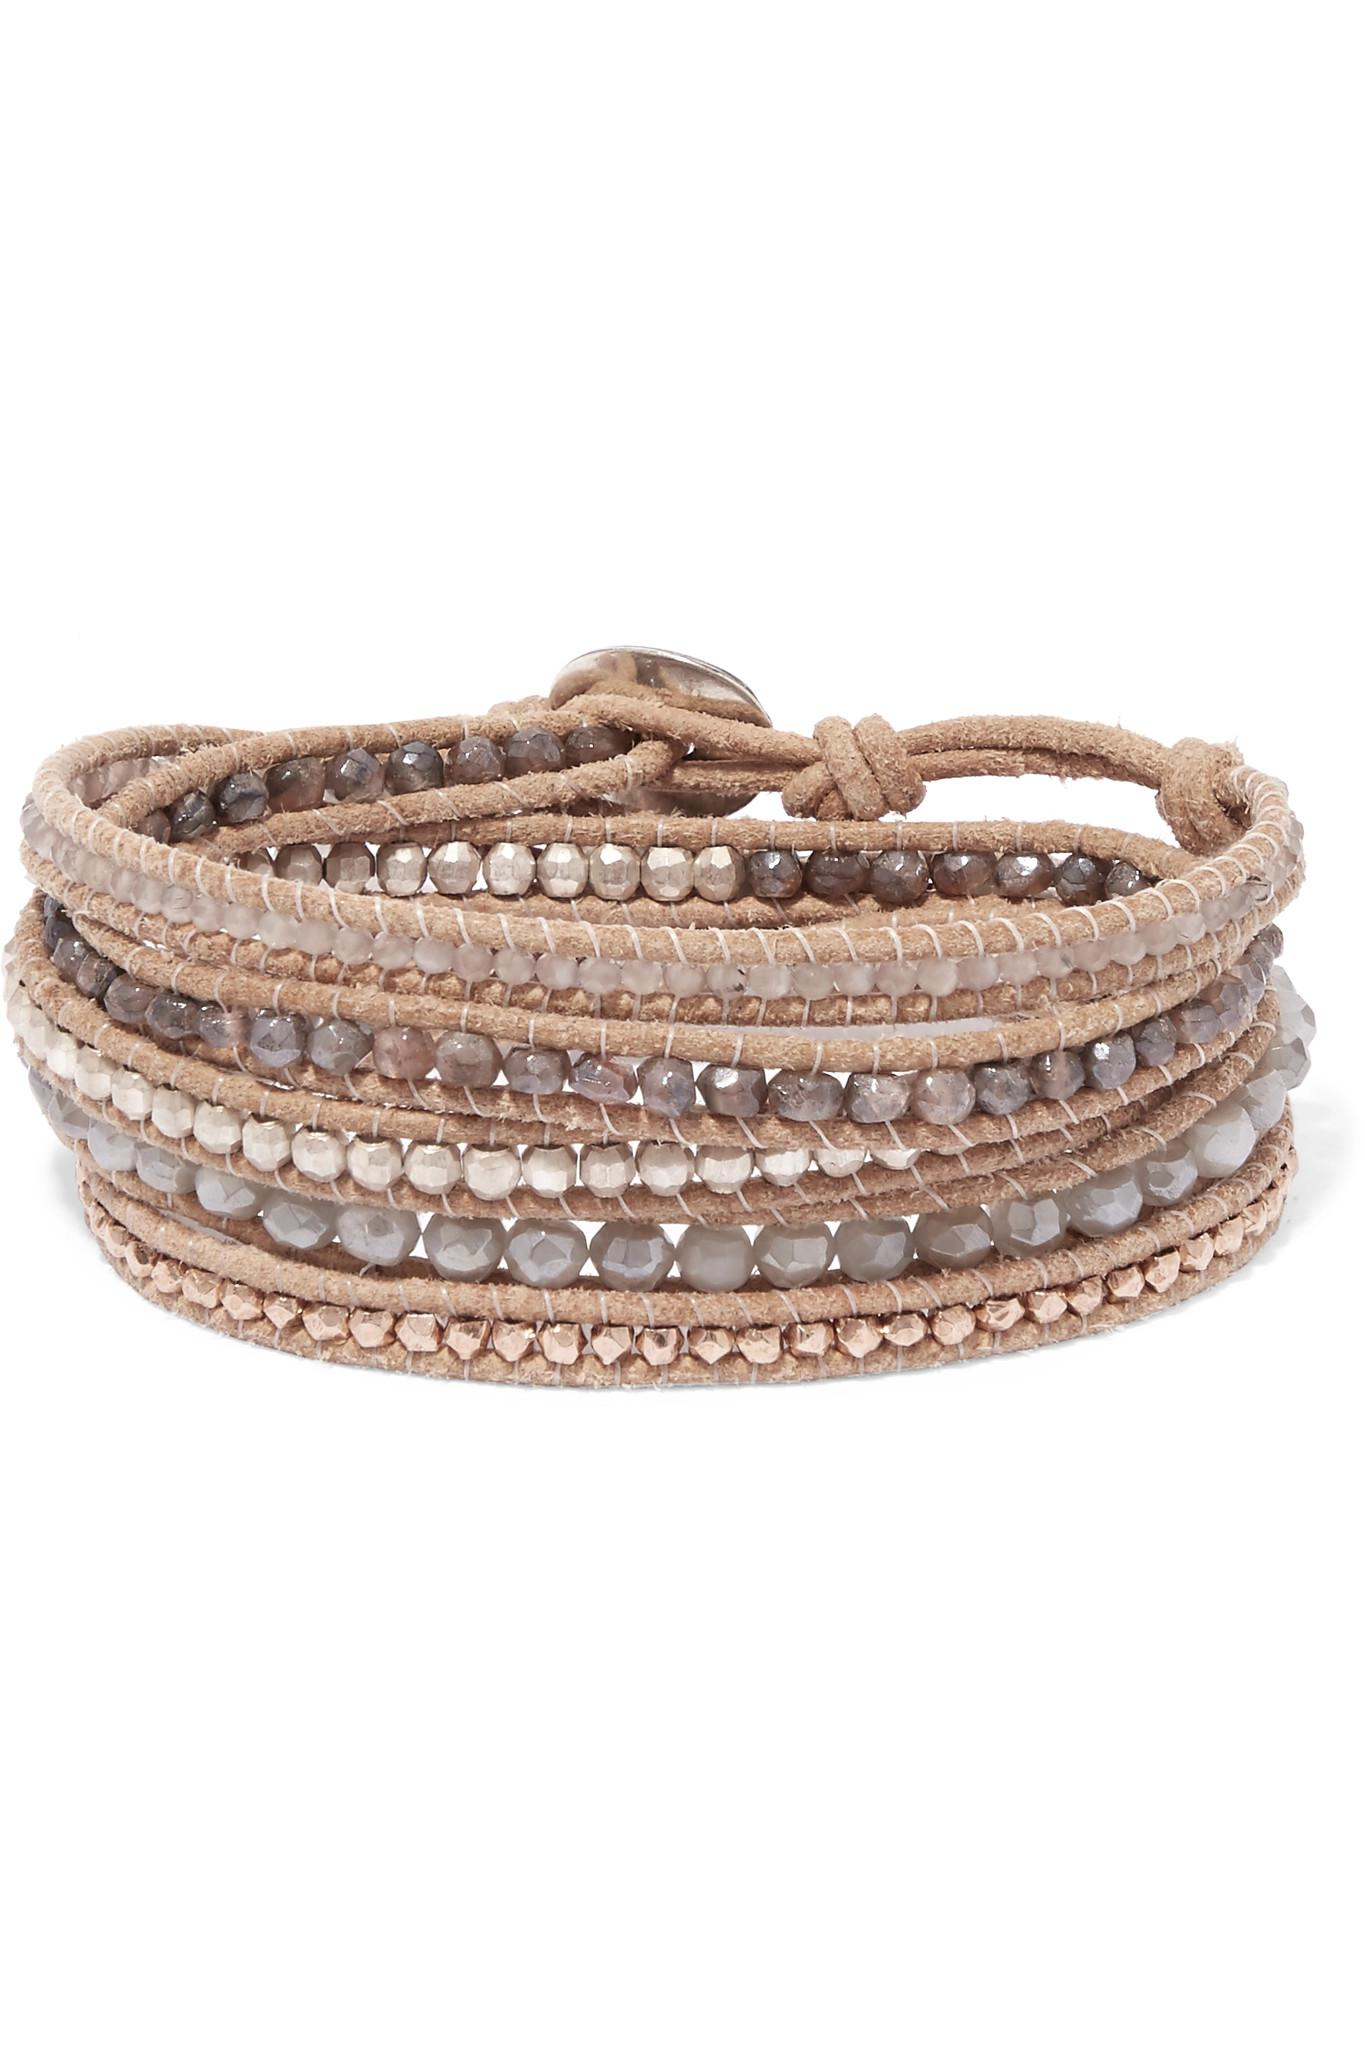 Chan Luu Chan Luu Woman 18-karat Rose Gold-plated Beaded Leather Bracelet Brown Size